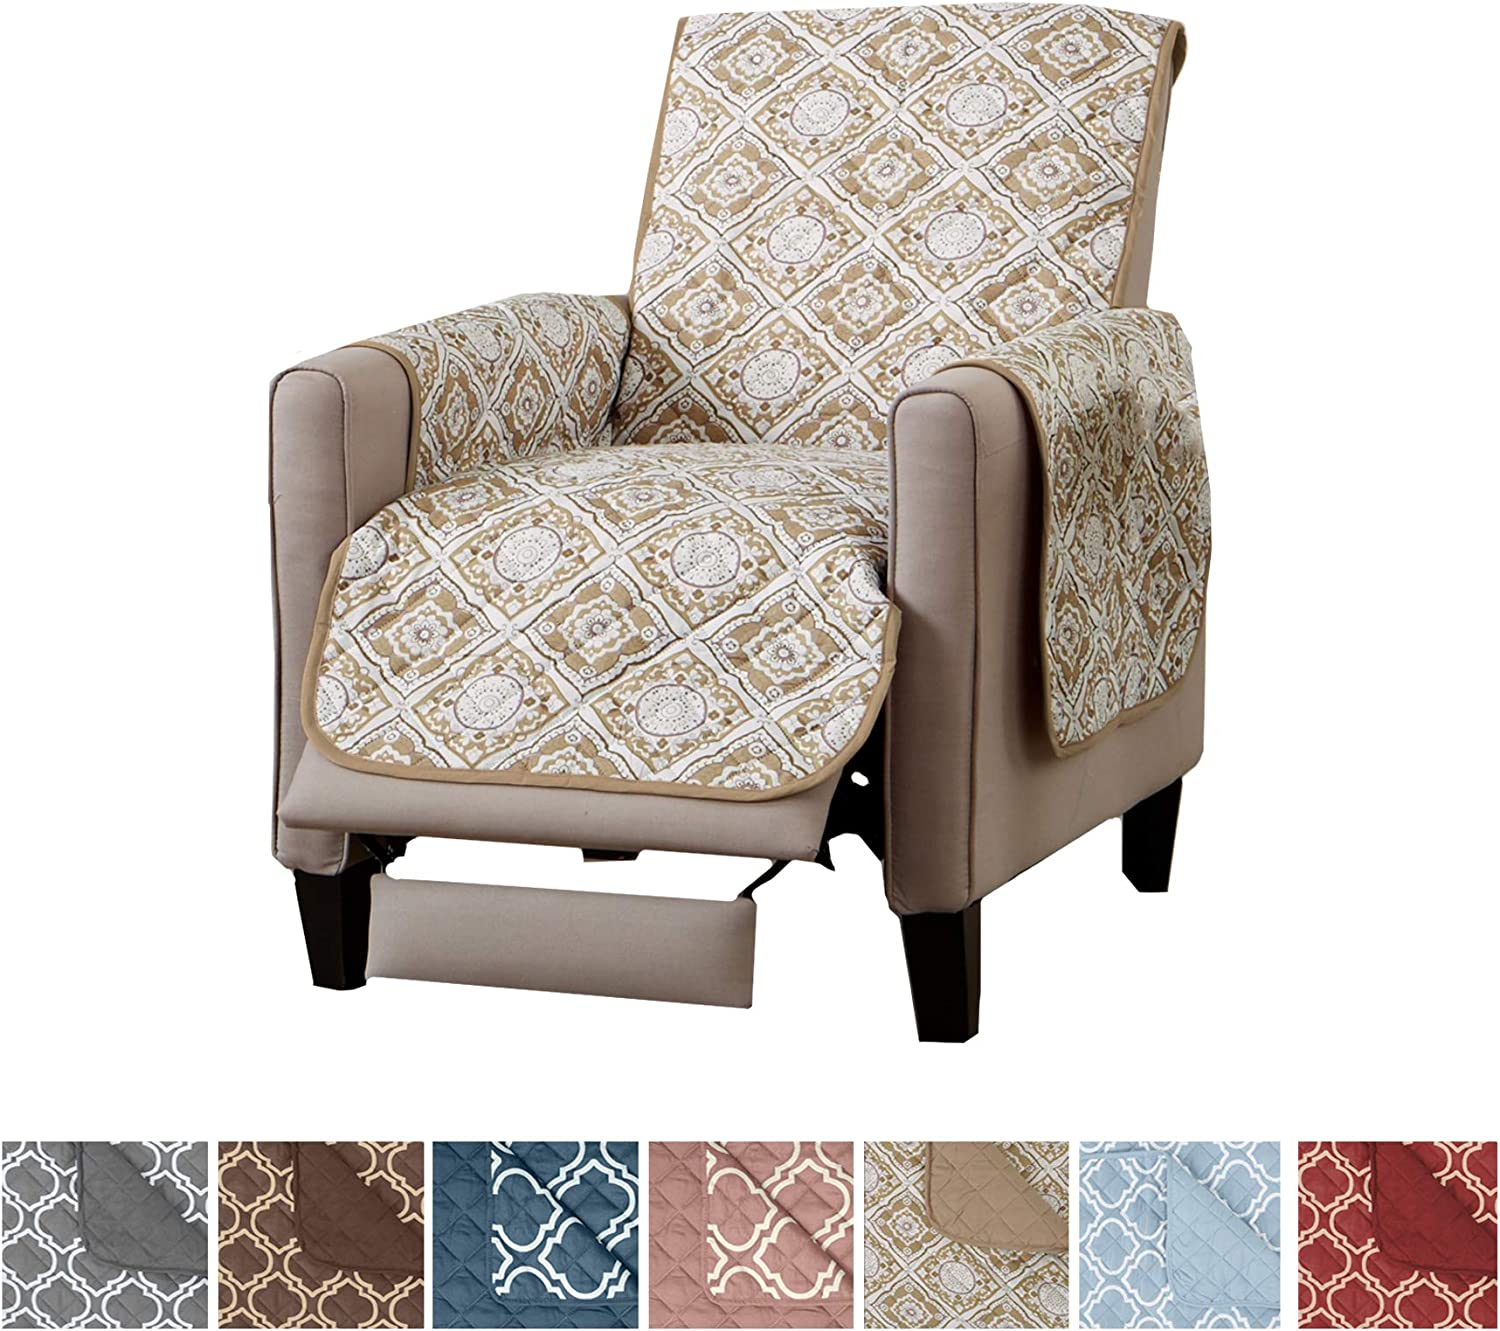 Recliner Cover for Dogs Protect from Kids and Pets. 26 Recliner, Indian Teal Recliner Furniture Protector with Secure Straps Reversible Recliner Cover for Living Room Oversized